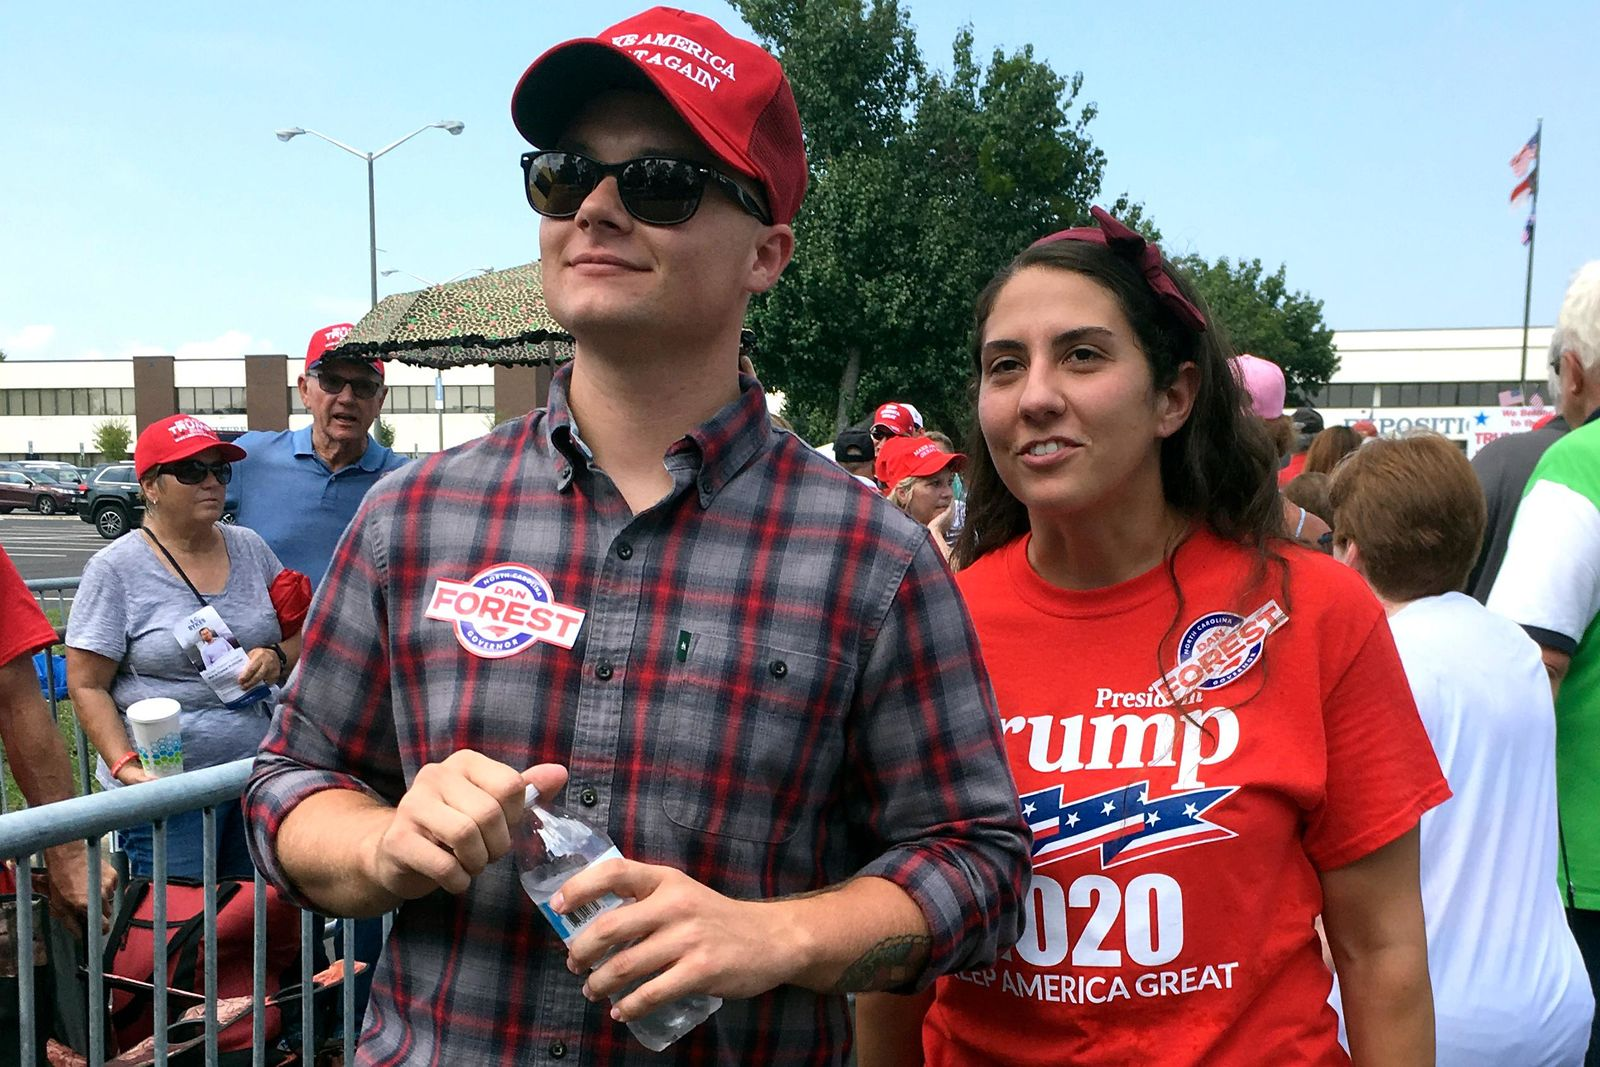 Ashley Arentz, 28, of Jacksonville, N.C., waits in line with friend Jonathan Ritter to enter a rally that President Donald Trump staged for Republican congressional candidate Dan Bishop in Fayetteville, N.C., Monday, Sept. 9, 2019. Arentz, a Marine, said she signed up to vote at the rally. (AP Photo/Alan Fram)